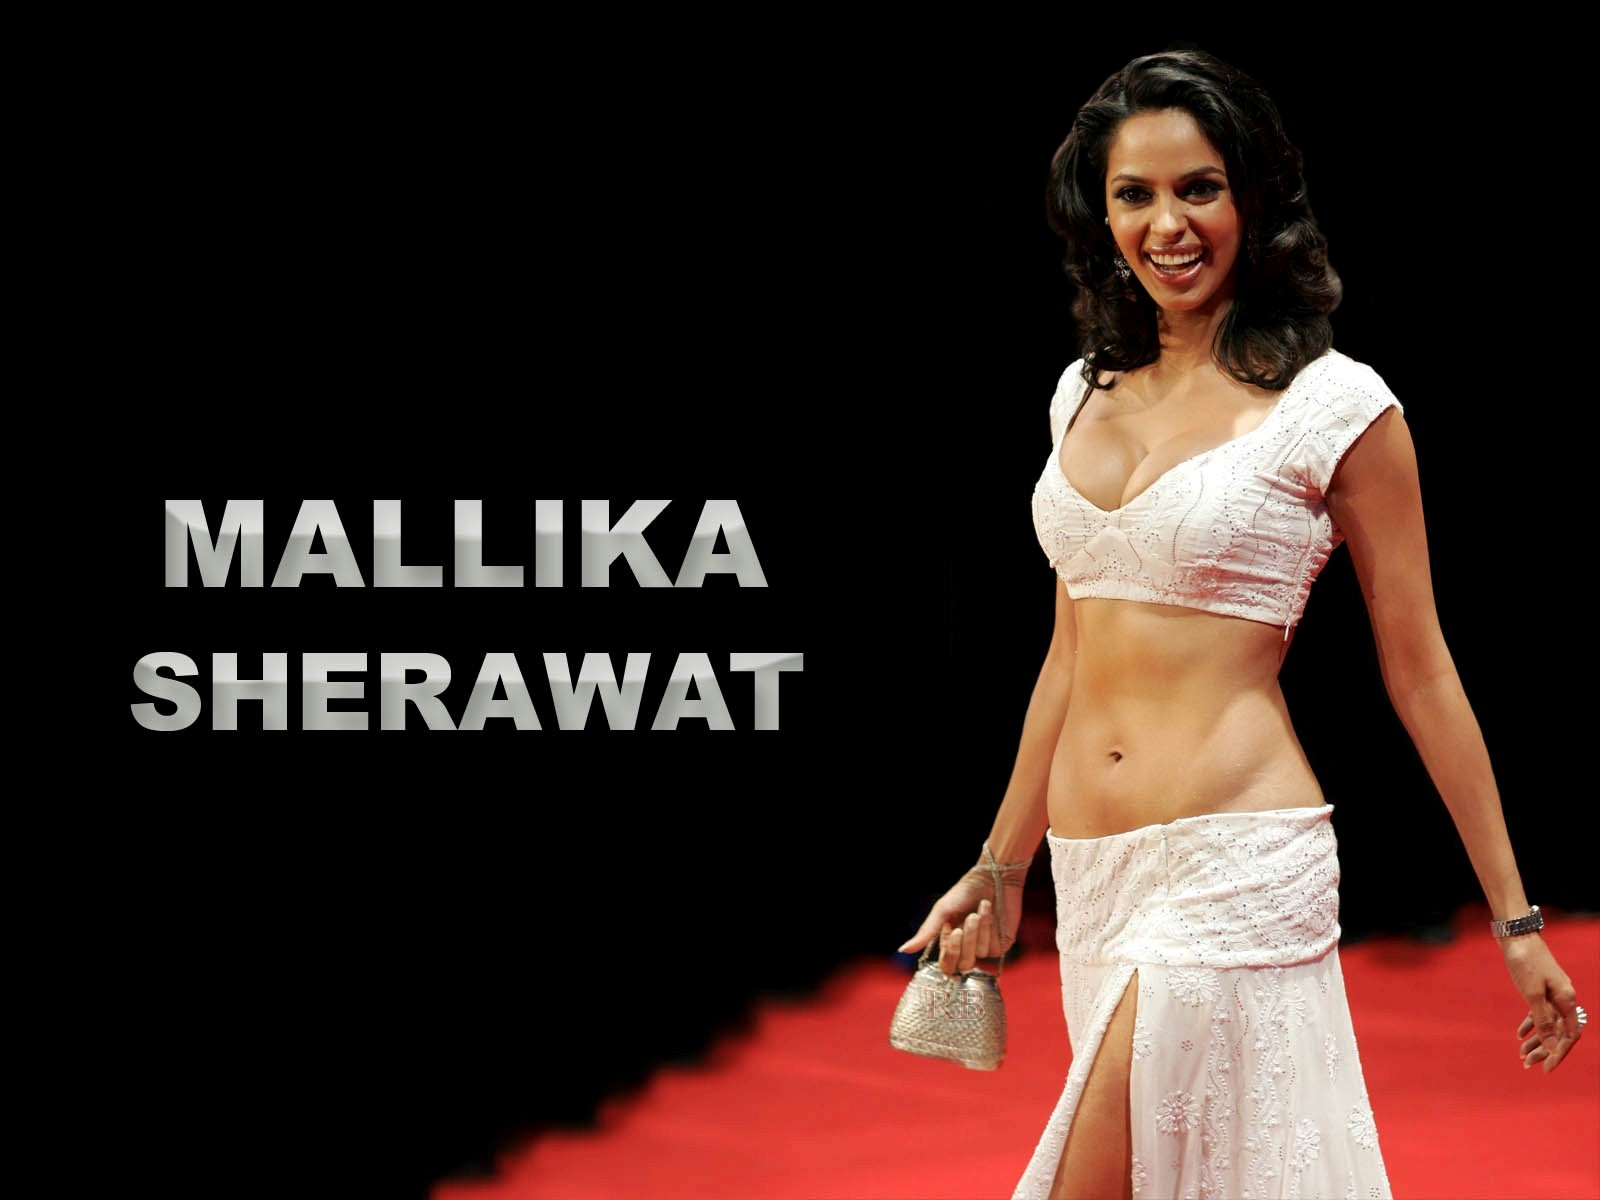 Mallika sherawat actress wallpaper